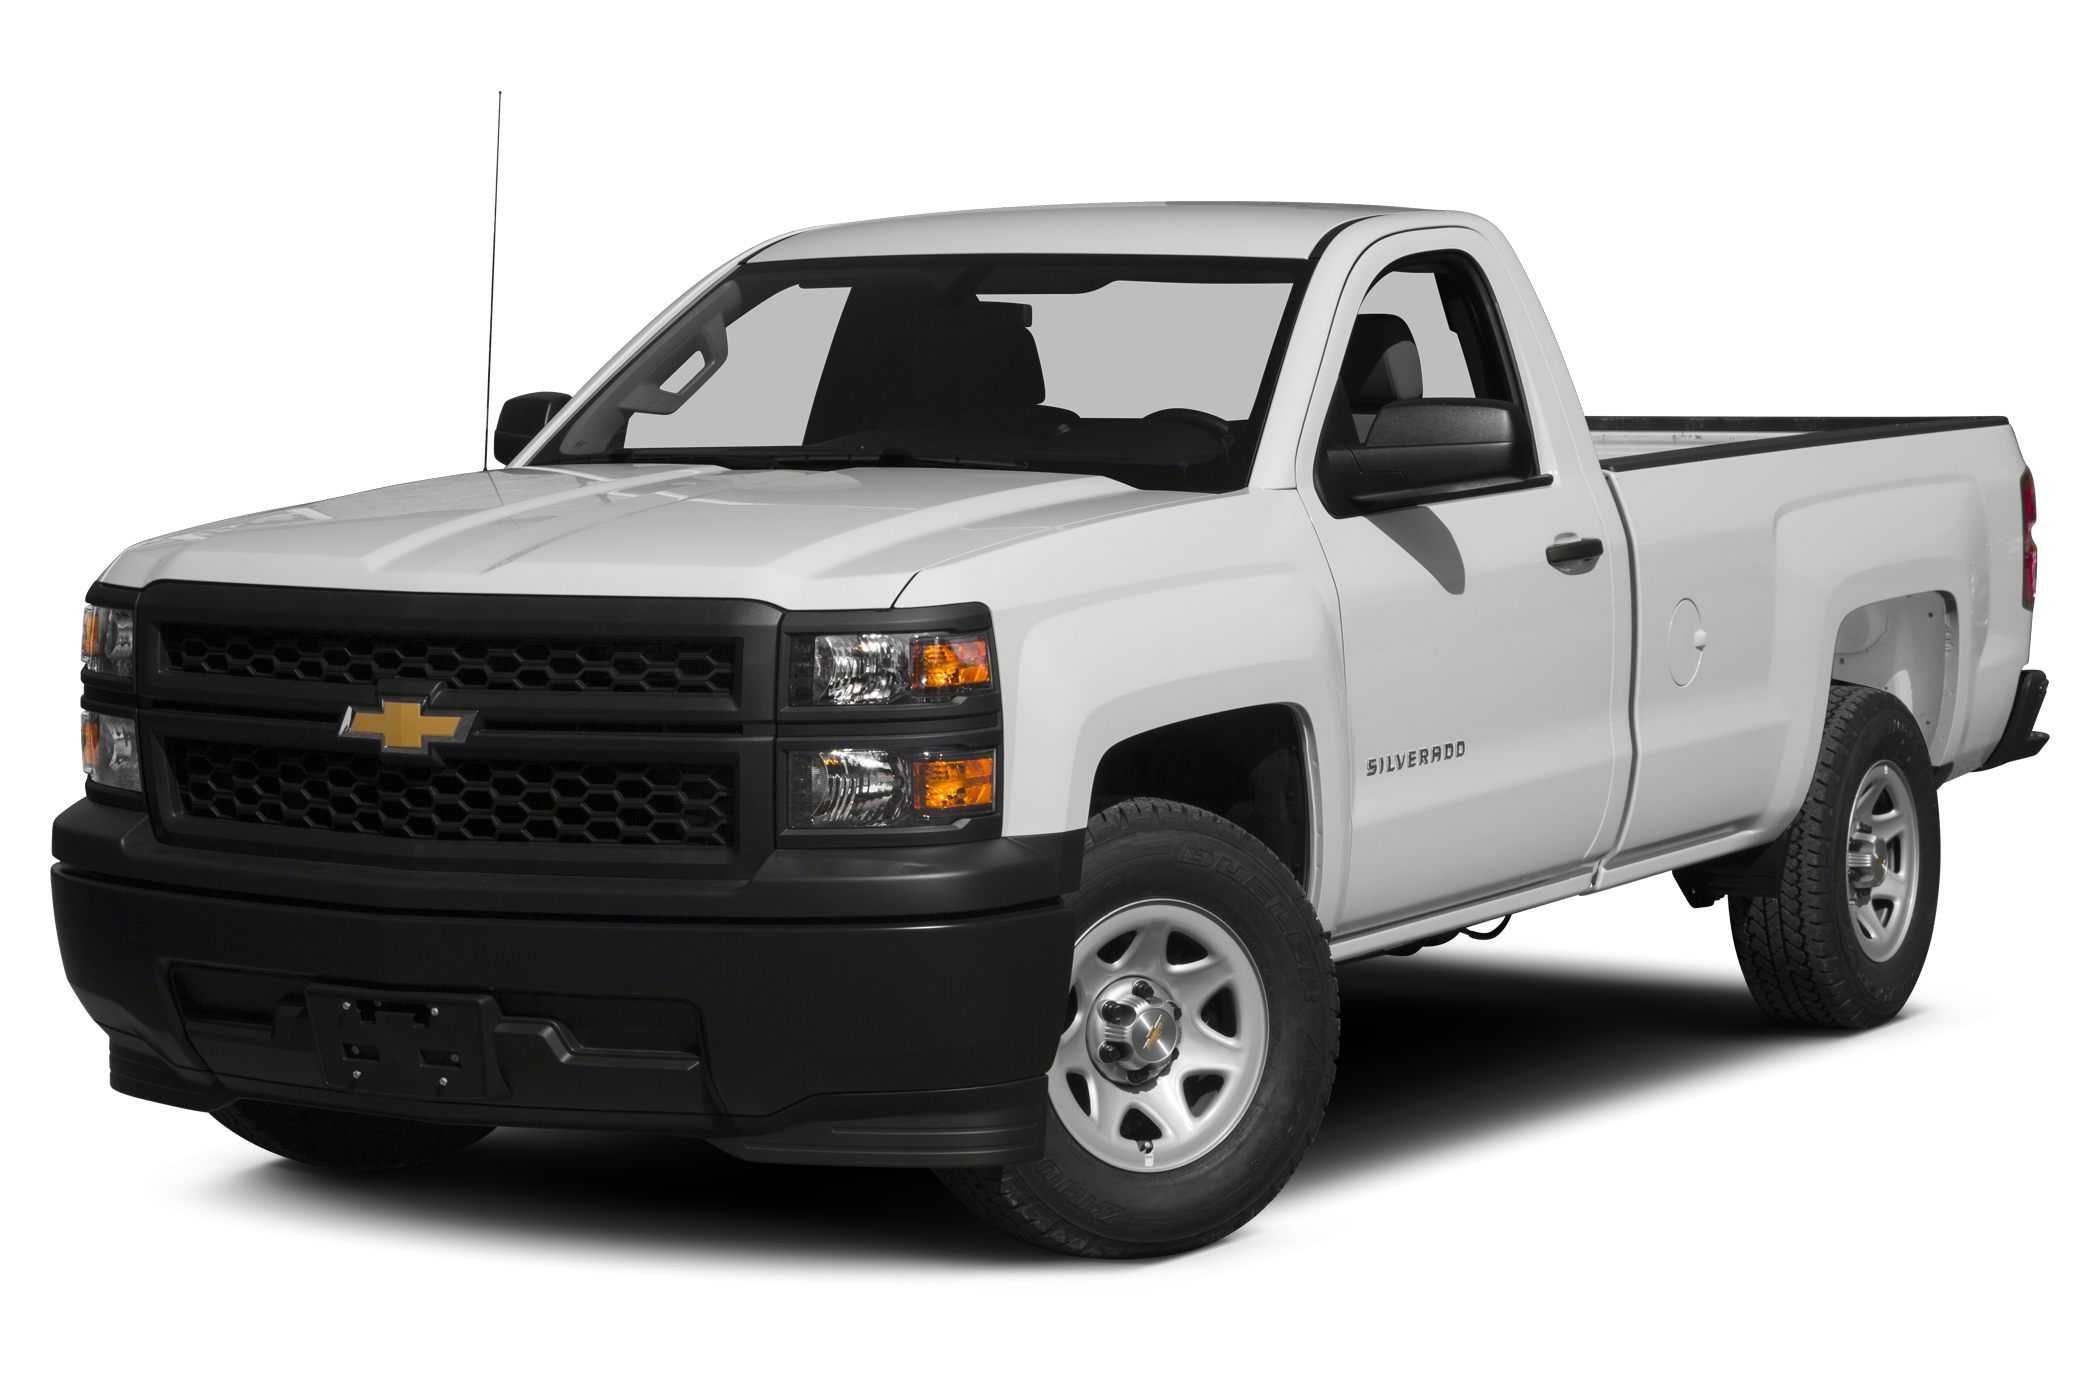 2014 Chevrolet Silverado 1500 Work Truck 2WT Regular Cab Pickup for sale in Angleton for $28,915 with 0 miles.